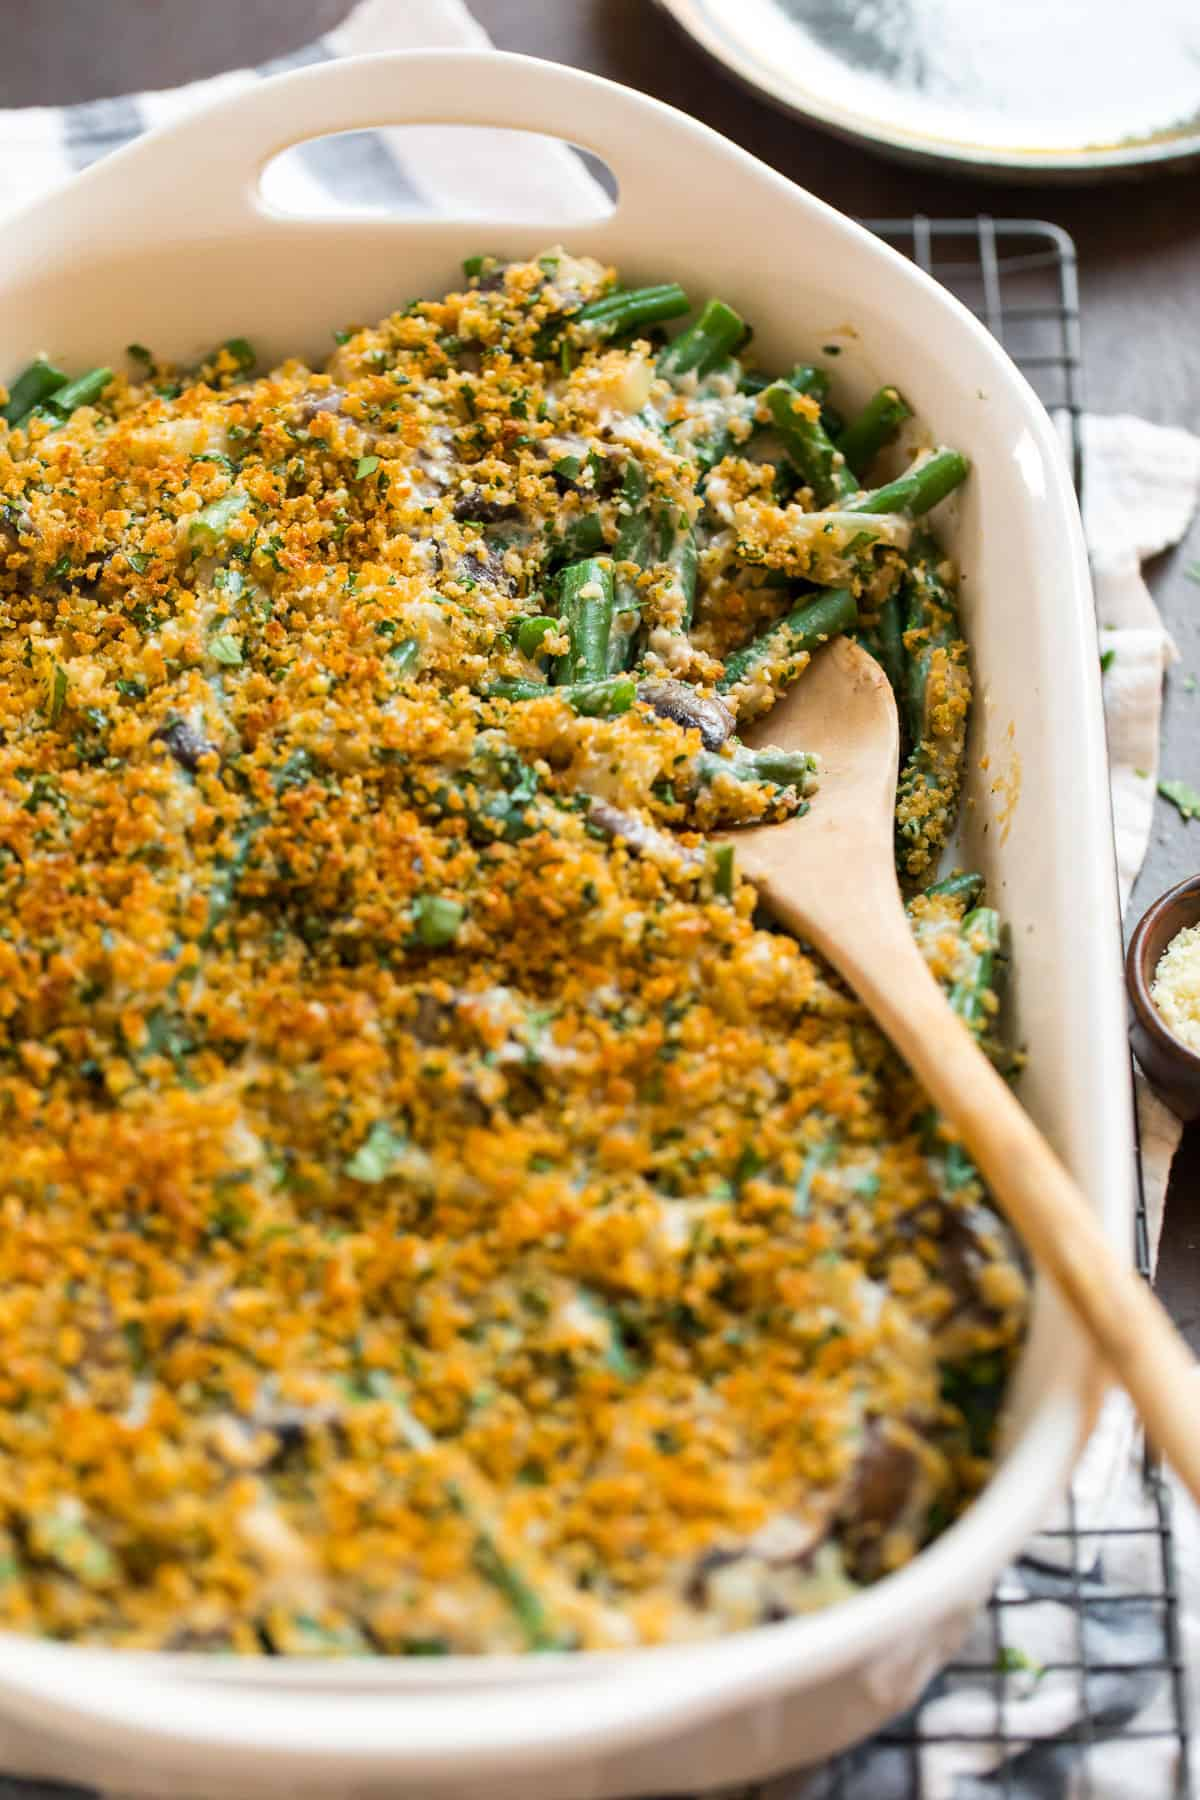 Vegetables in a baking dish with a breadcrumb topping